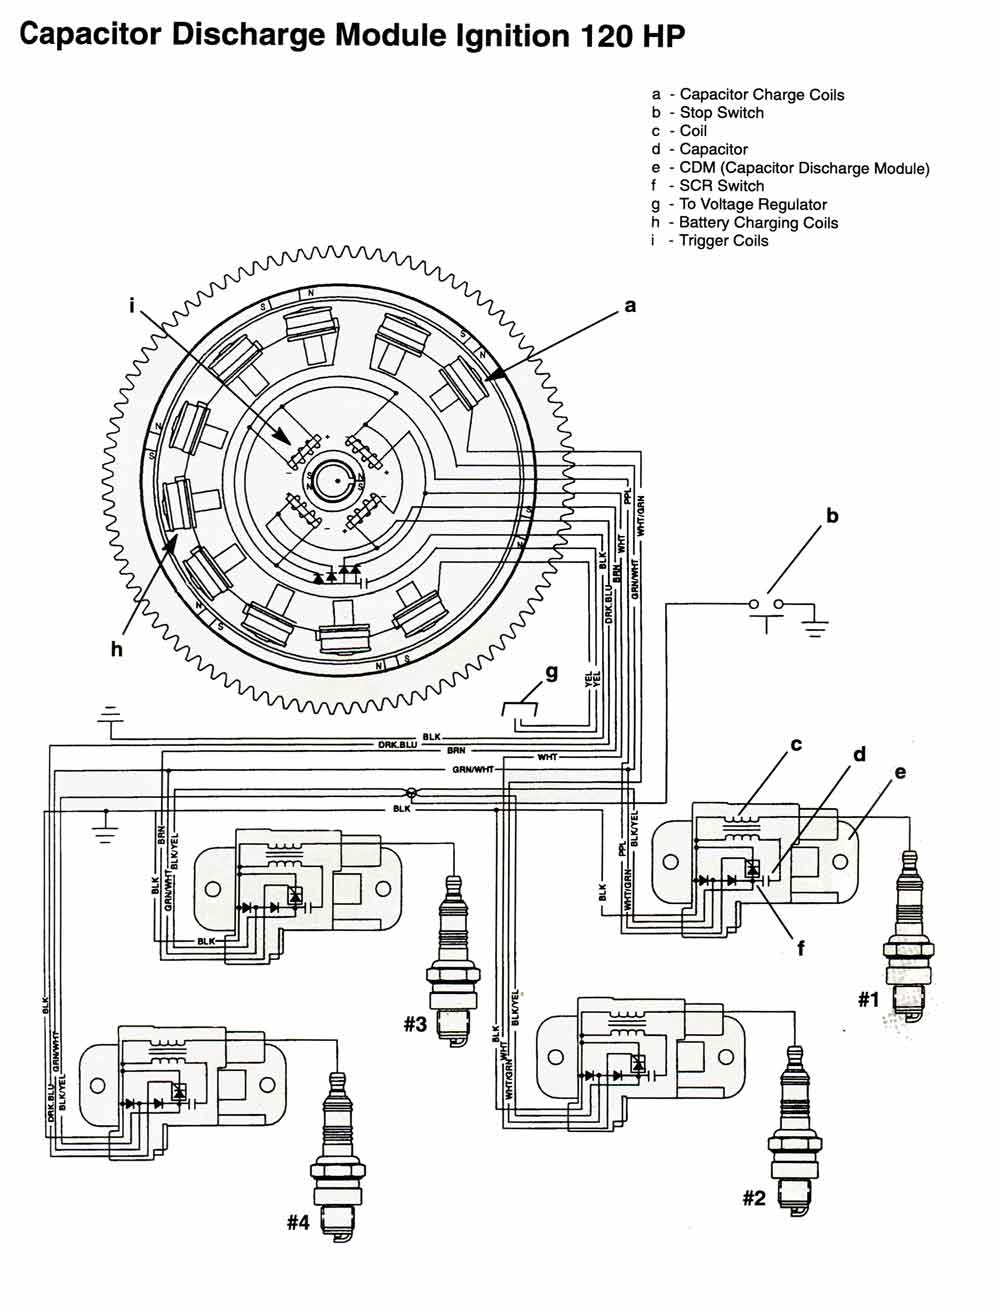 Force 120 Wiring Diagram Trusted Mercury Motor Outboard Og251541 Chrysler Diagrams Mastertech Marine 208 1 Phase Hp 1996 Up